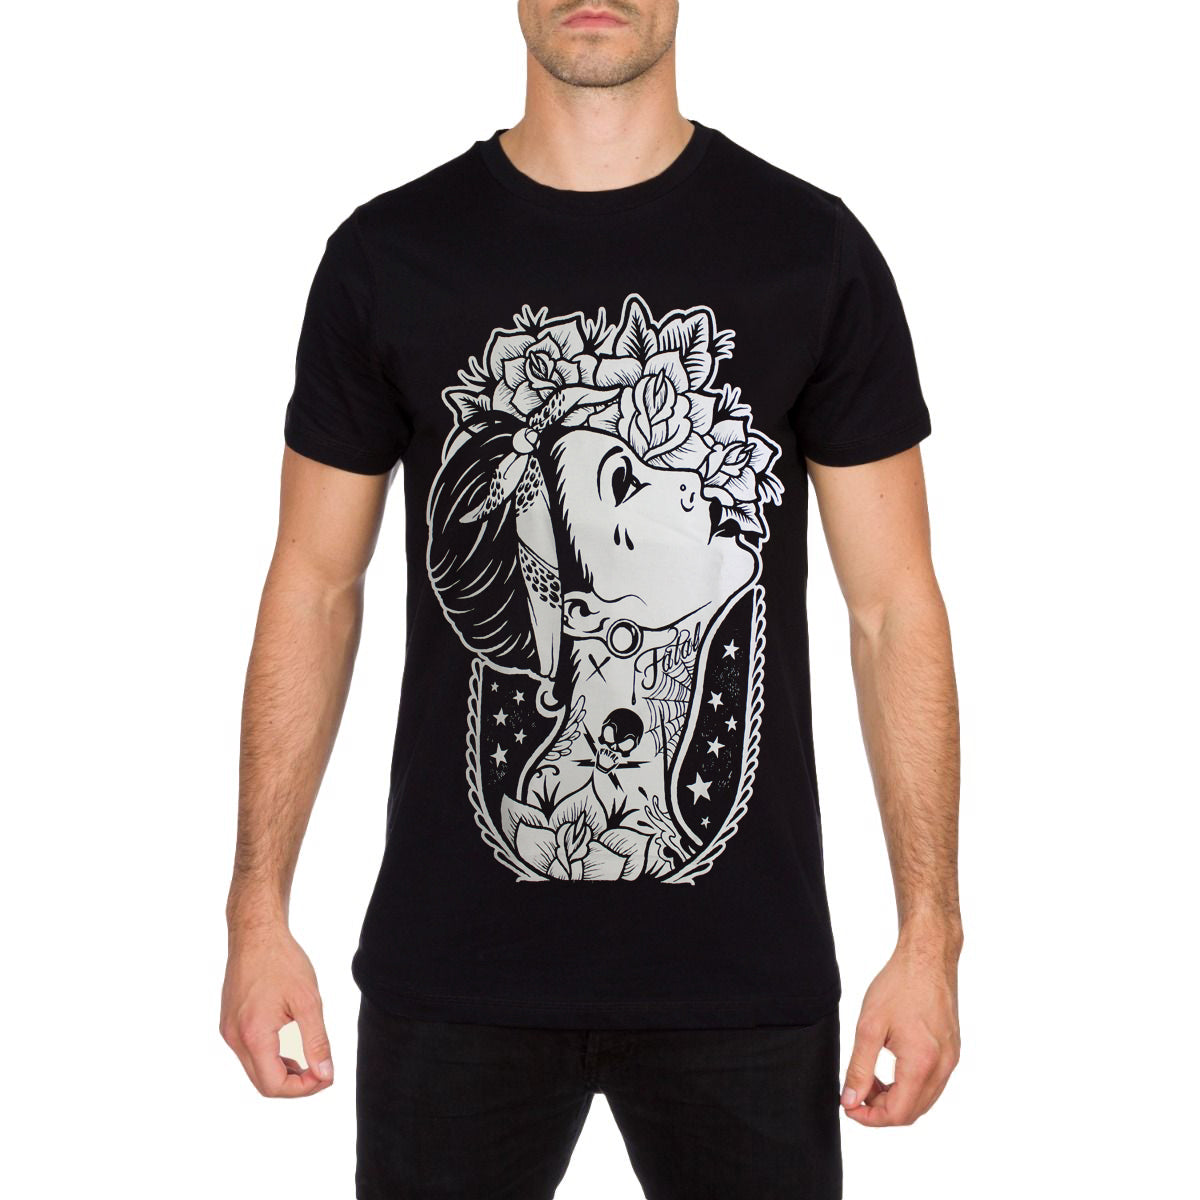 Fatal Clothing Designs | Roses Design Mens Black T Shirt By Fatal Clothing Australia Sub